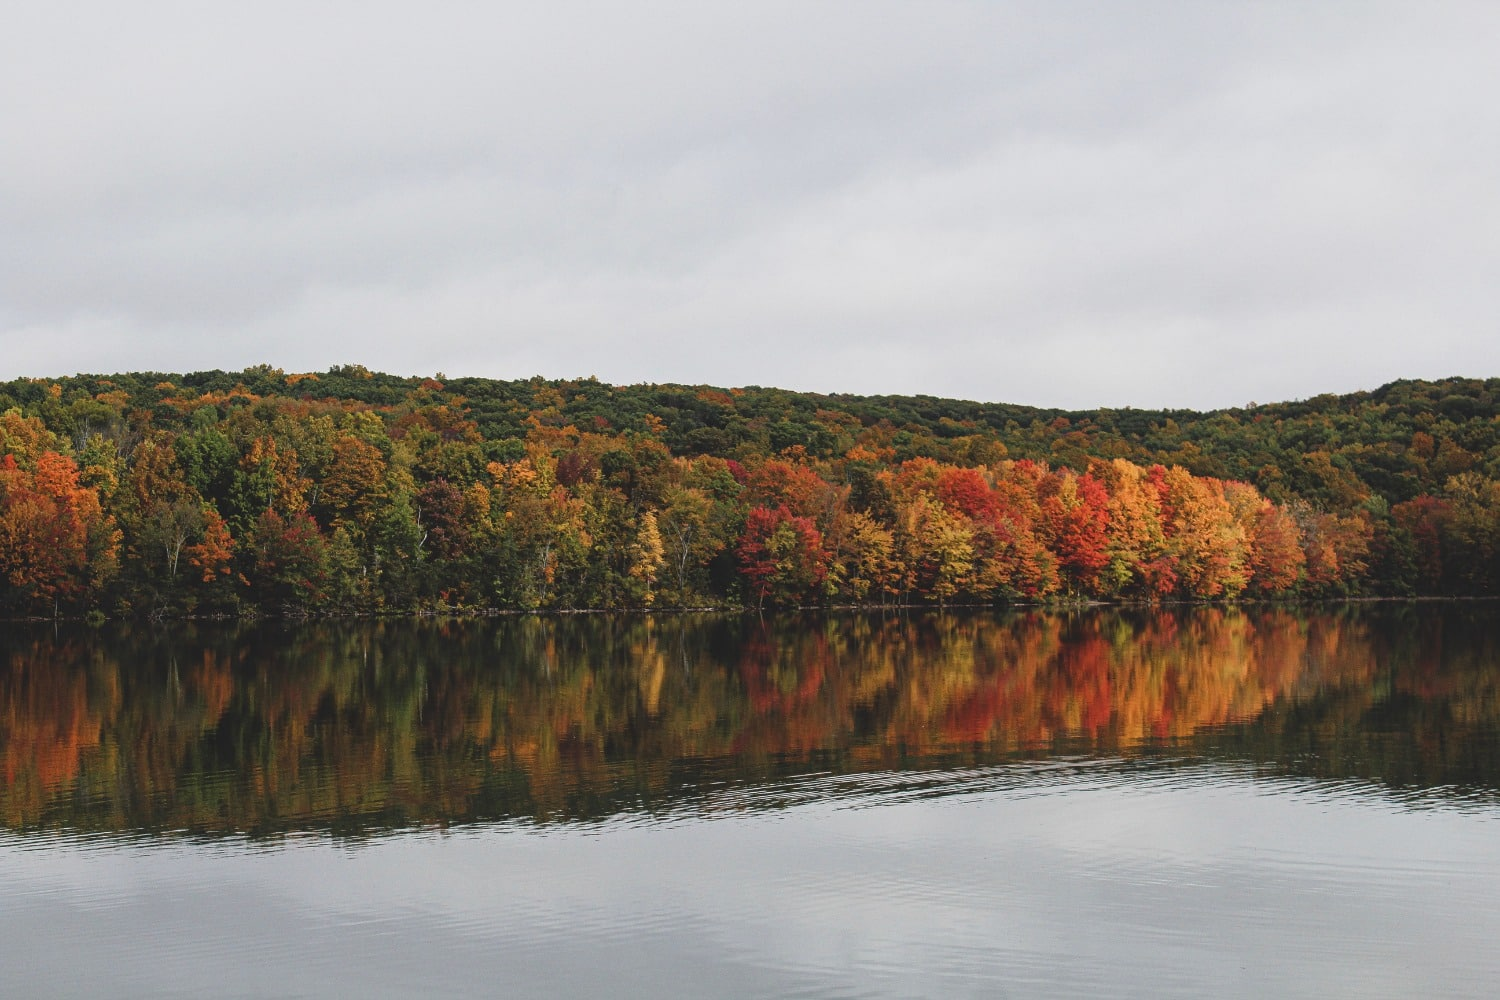 fall foliage next to wide river